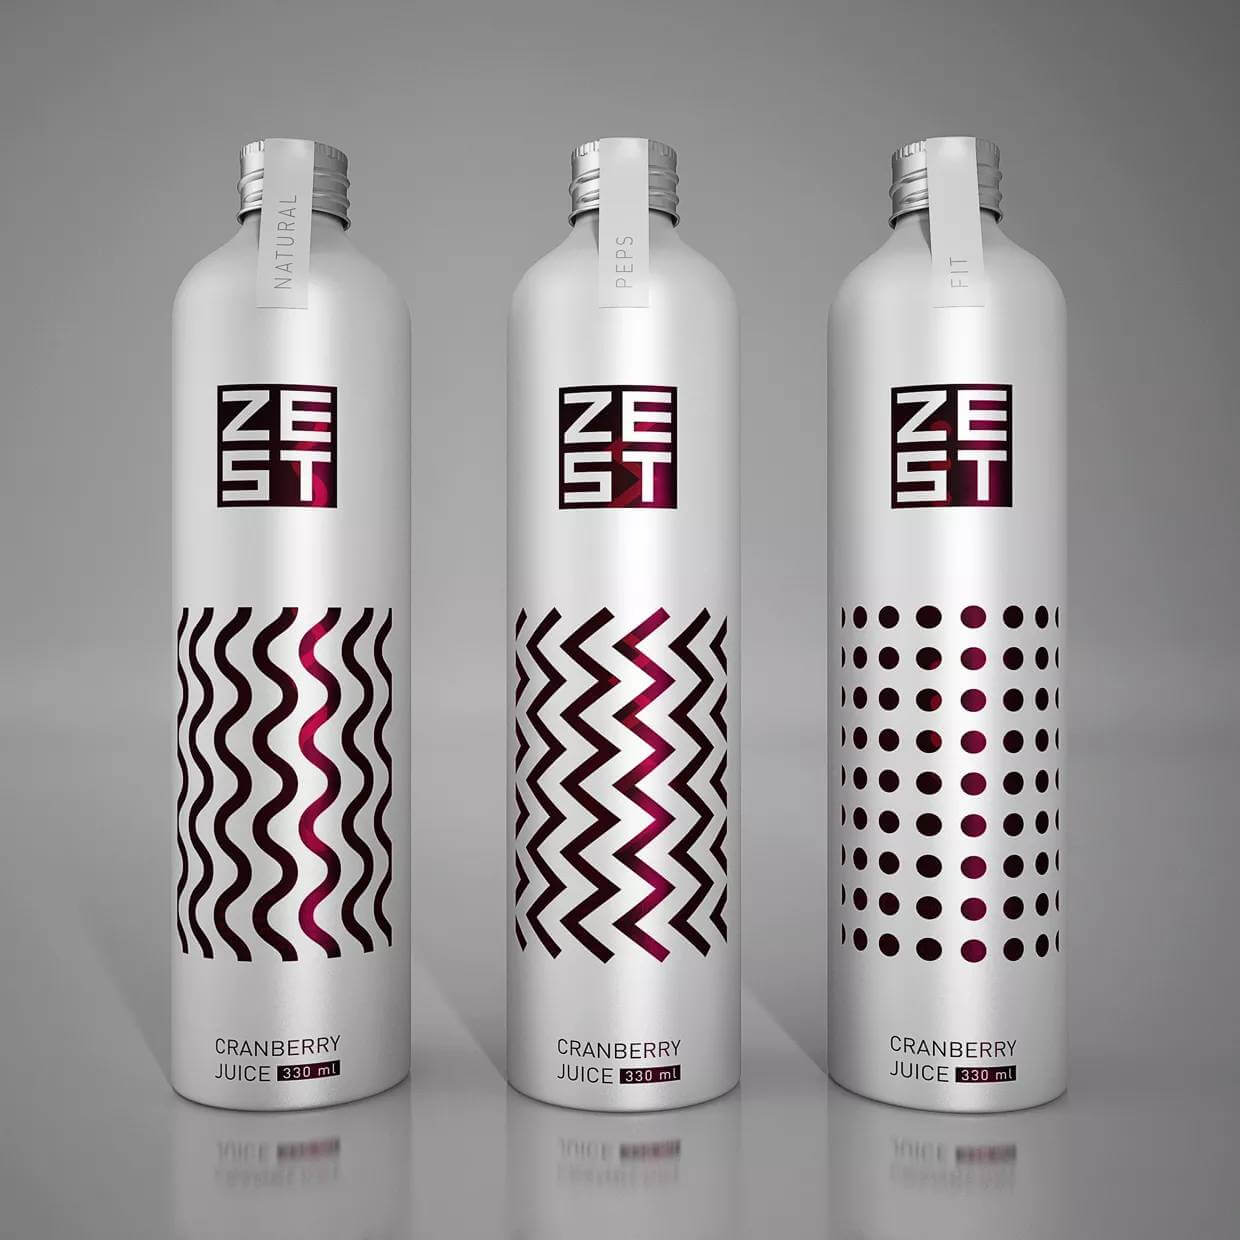 unique bottle designs 1 (1)